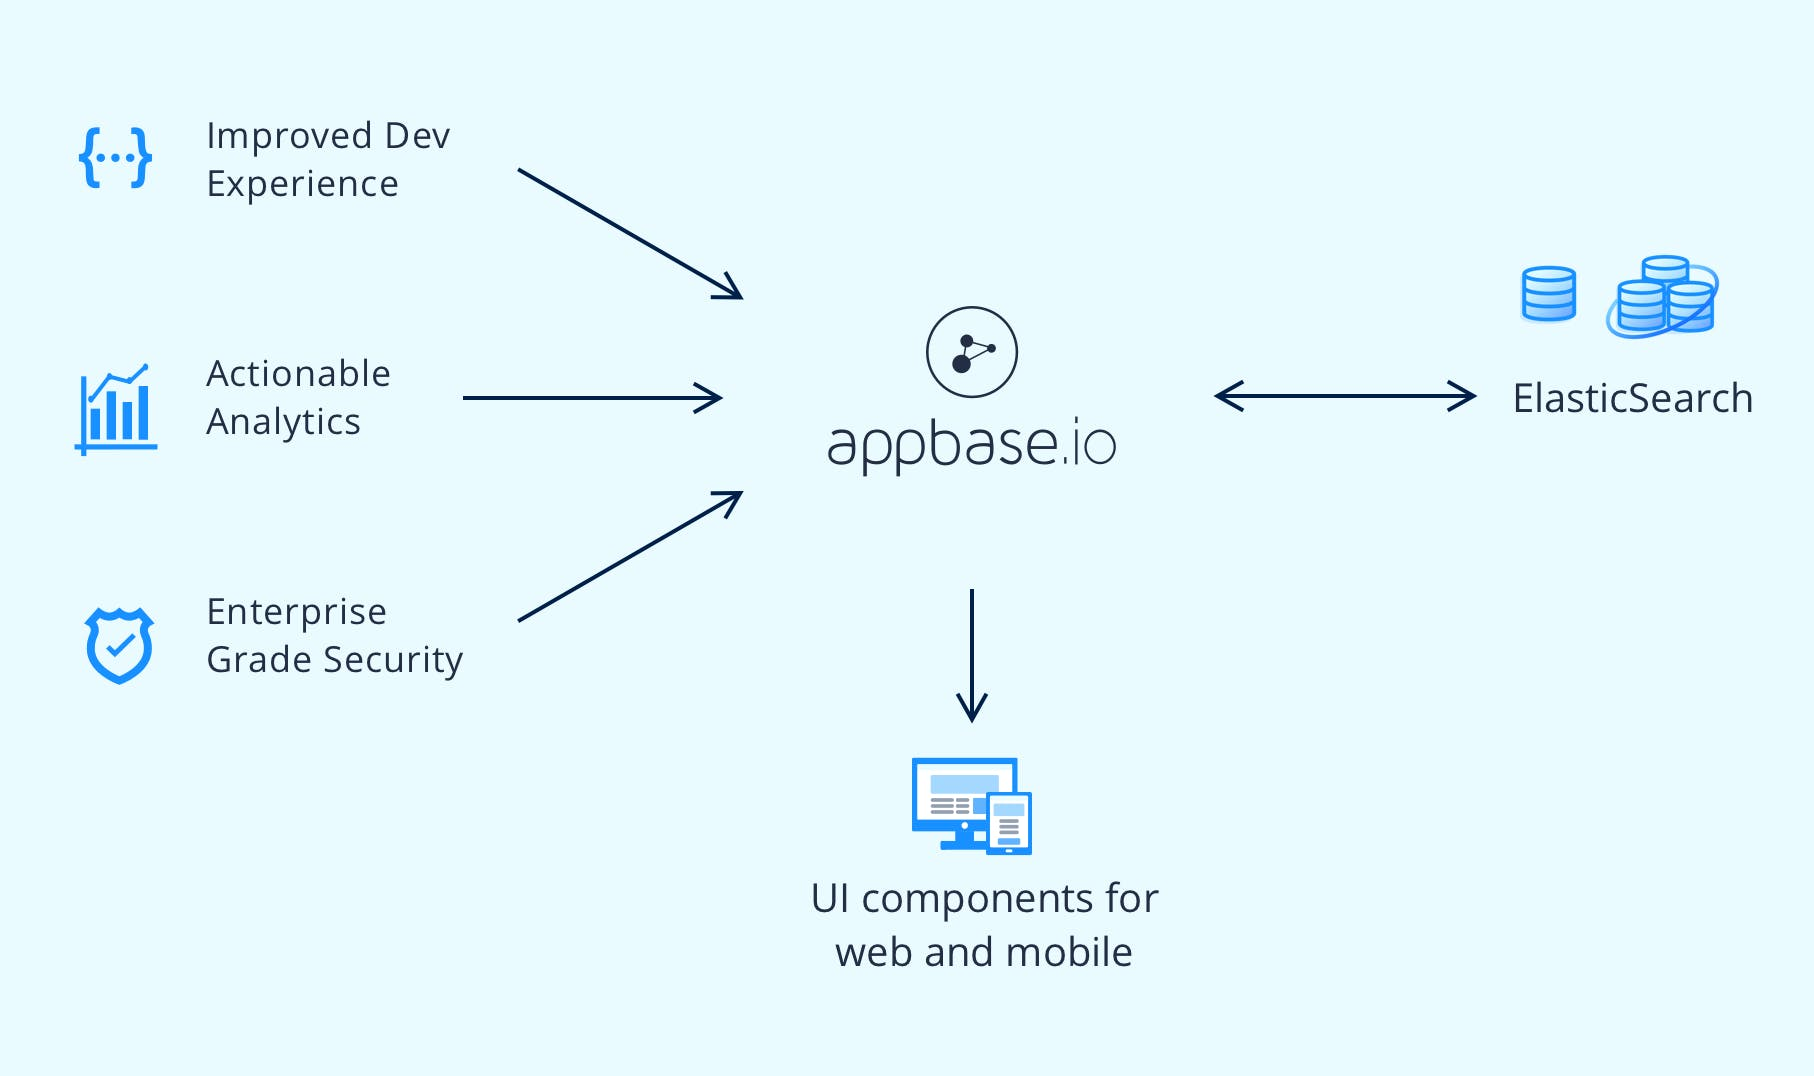 Appbase.io provides the search stack for building modern apps